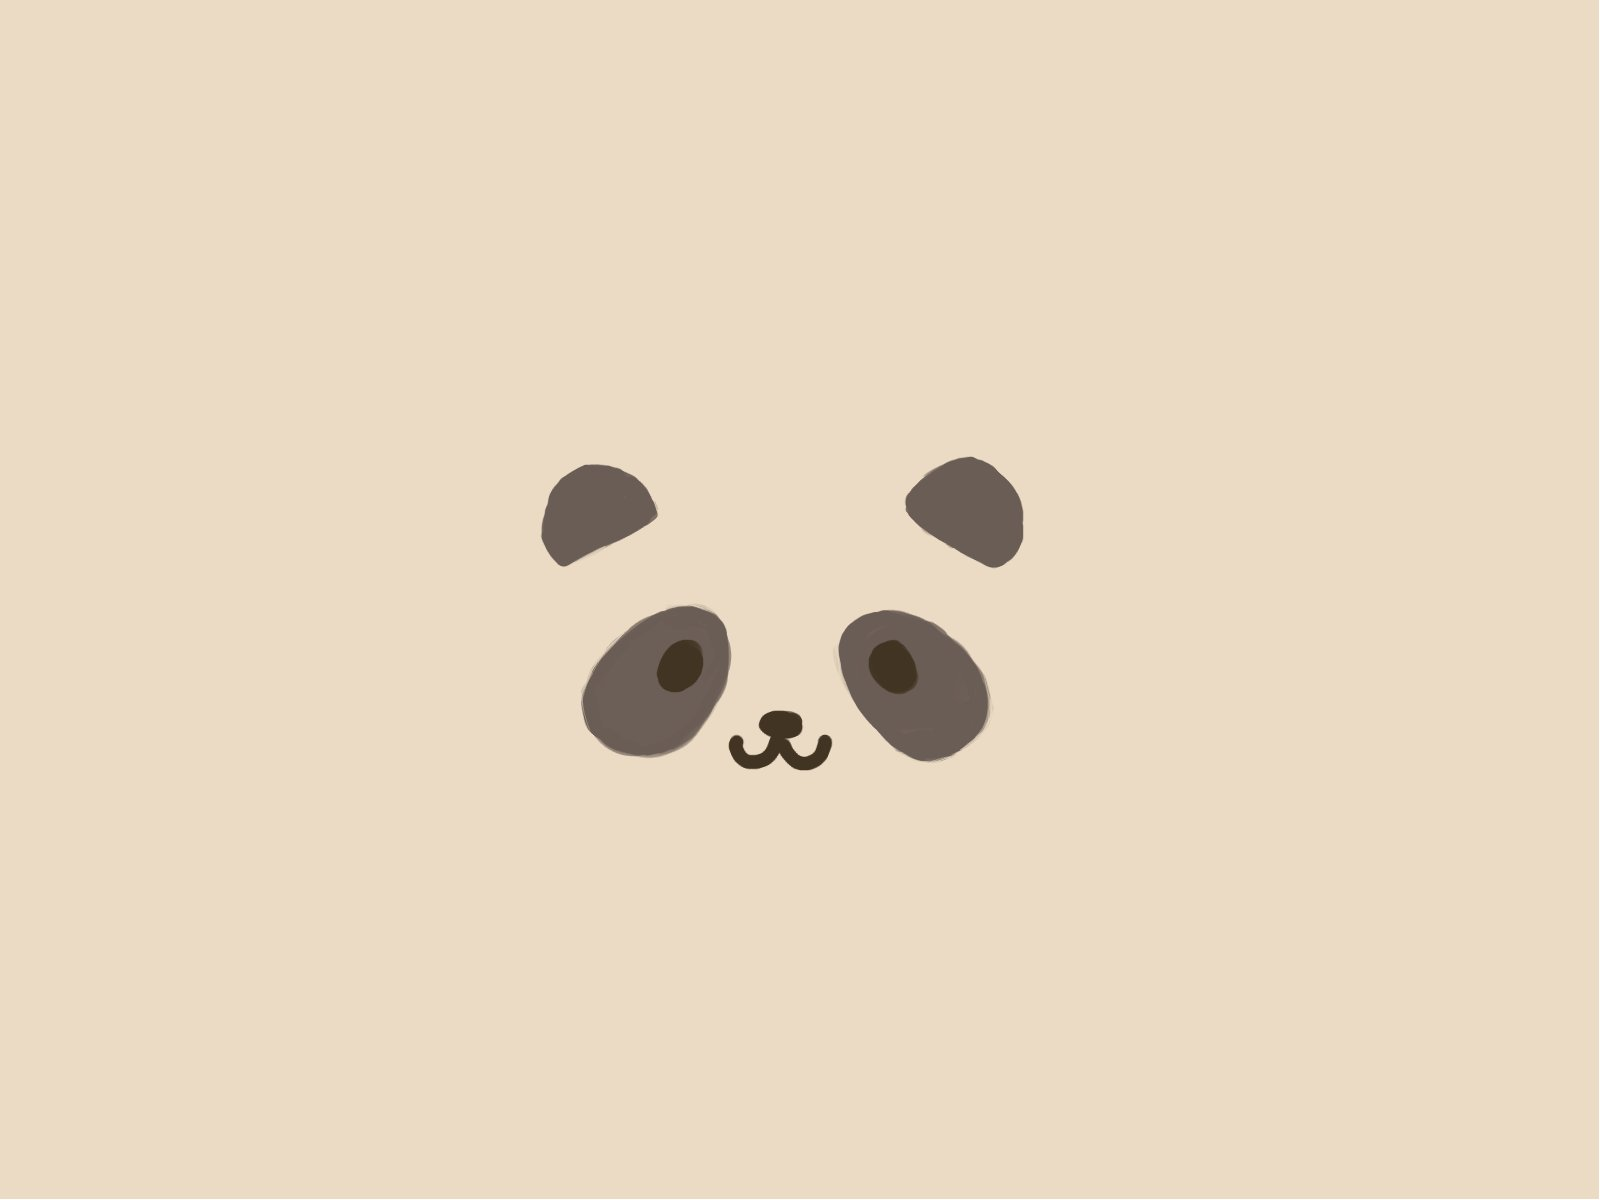 Free Crazy Pandalism Panda Wallpaper [